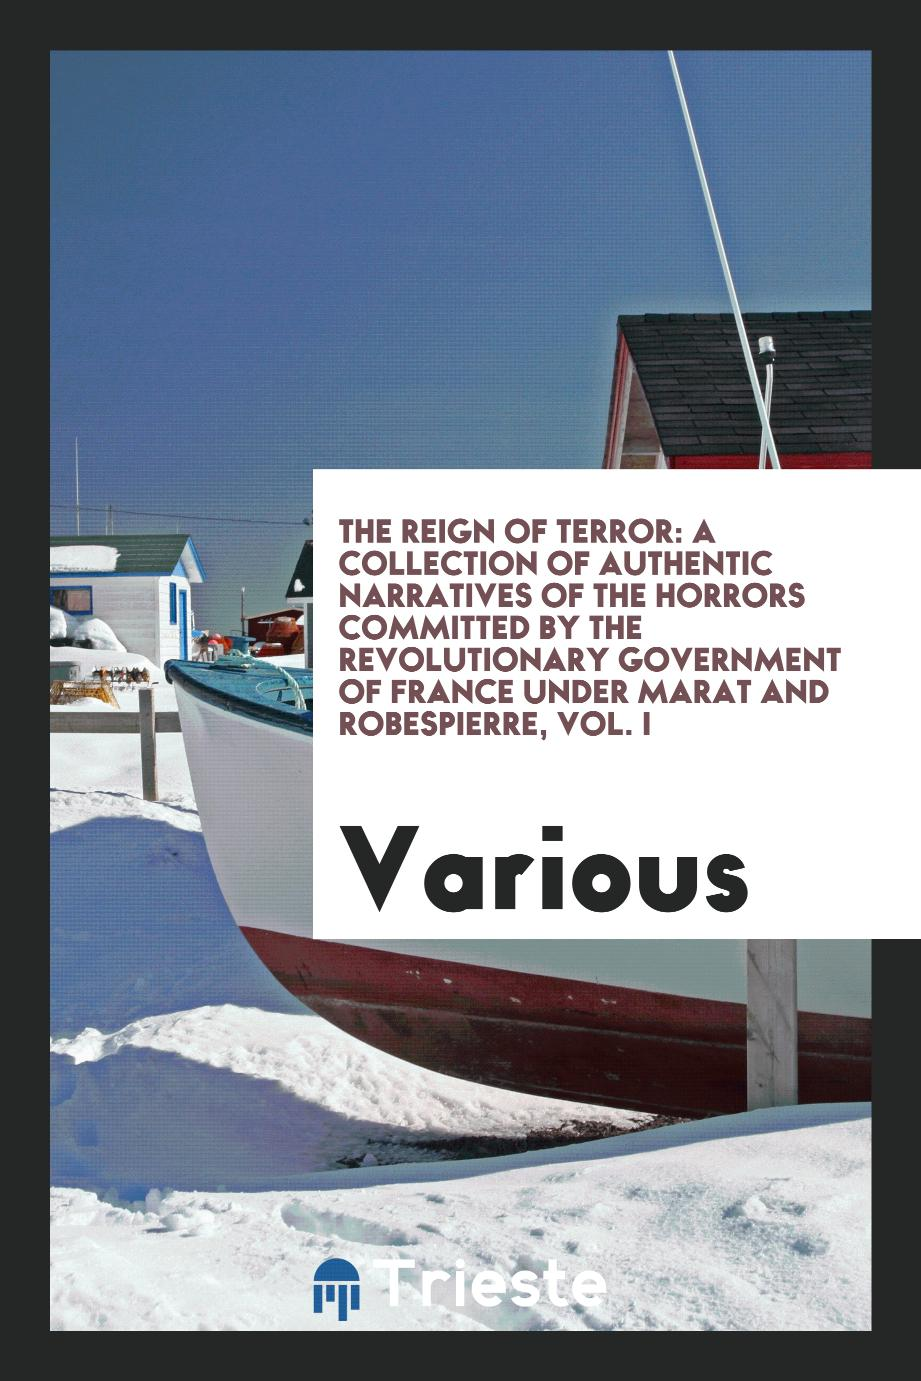 The reign of terror: a collection of authentic narratives of the horrors committed by the revolutionary government of France under Marat and Robespierre, Vol. I